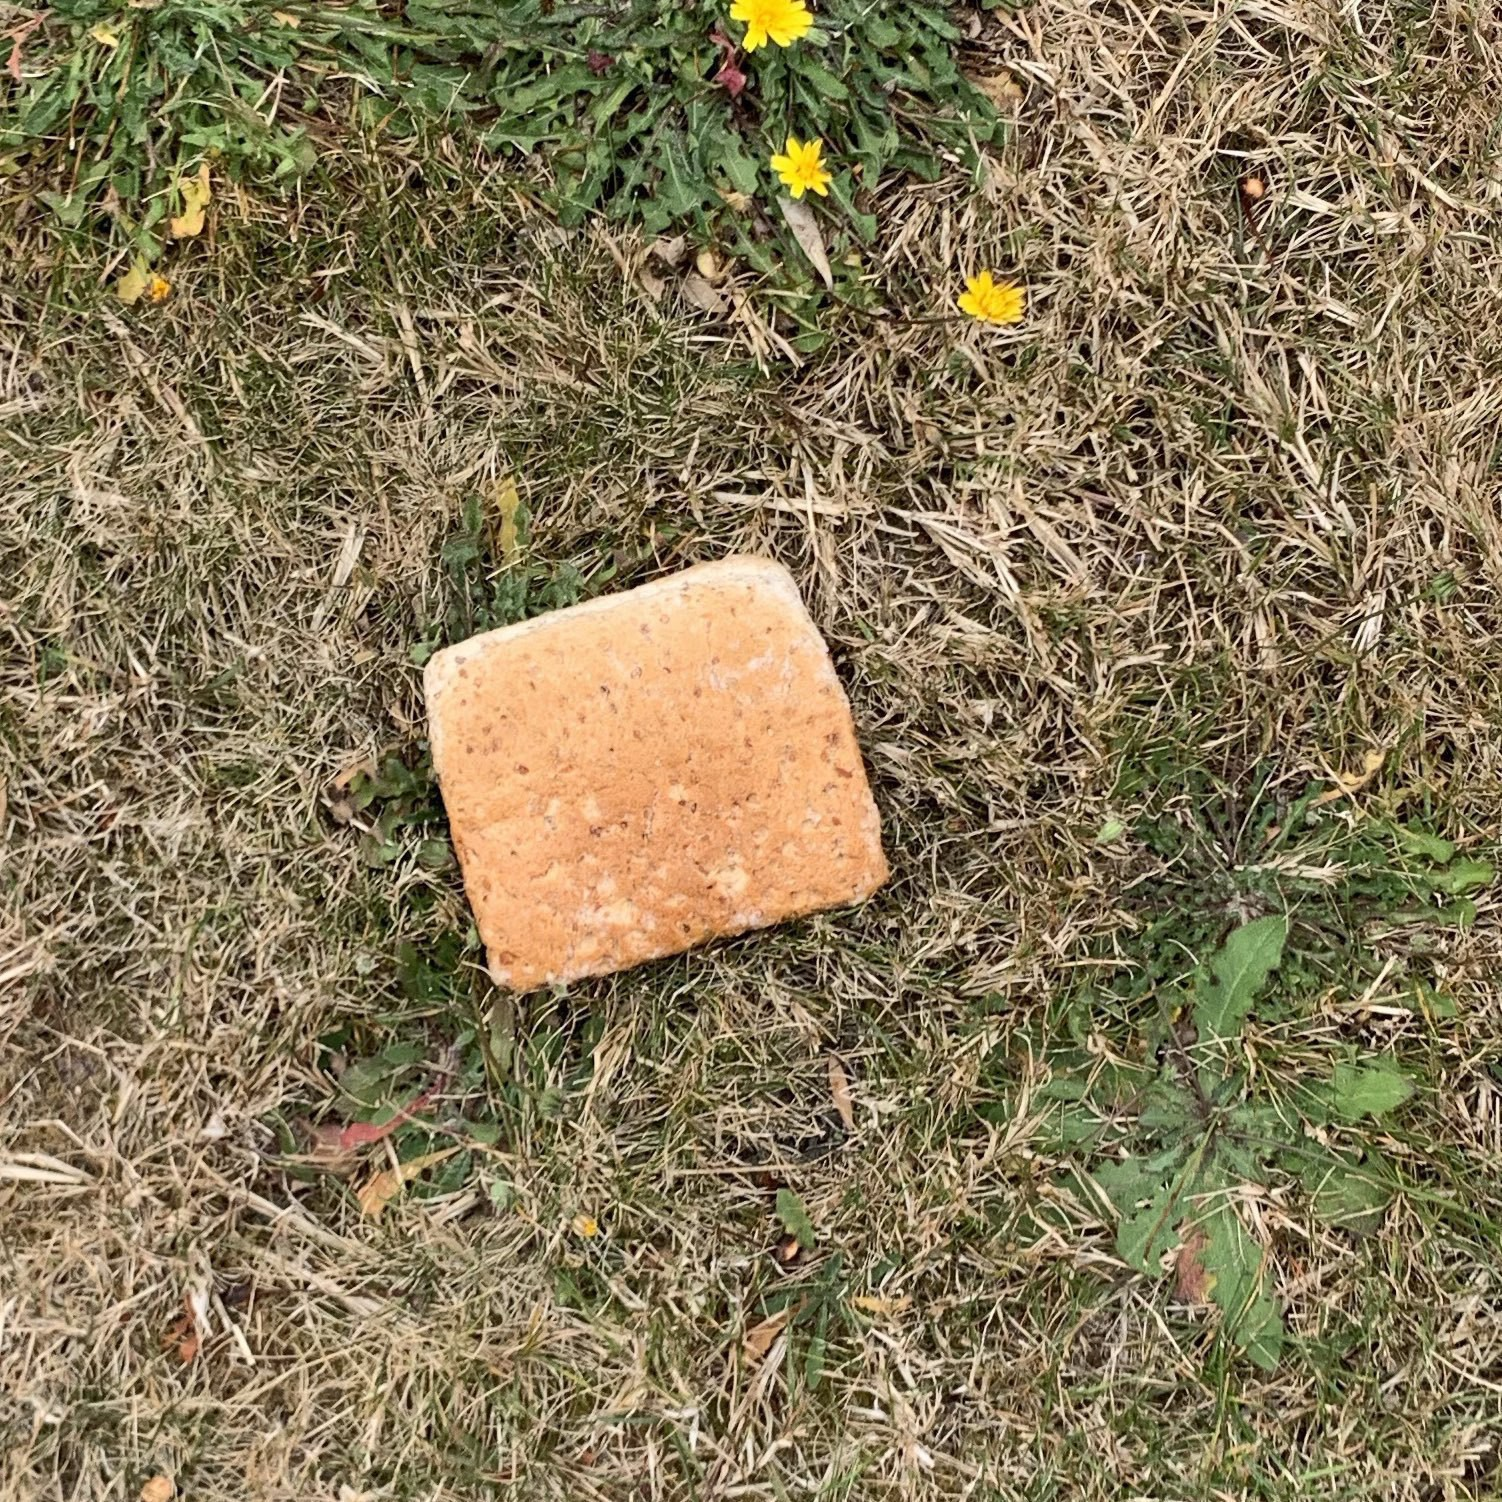 A slice of bread on the grass